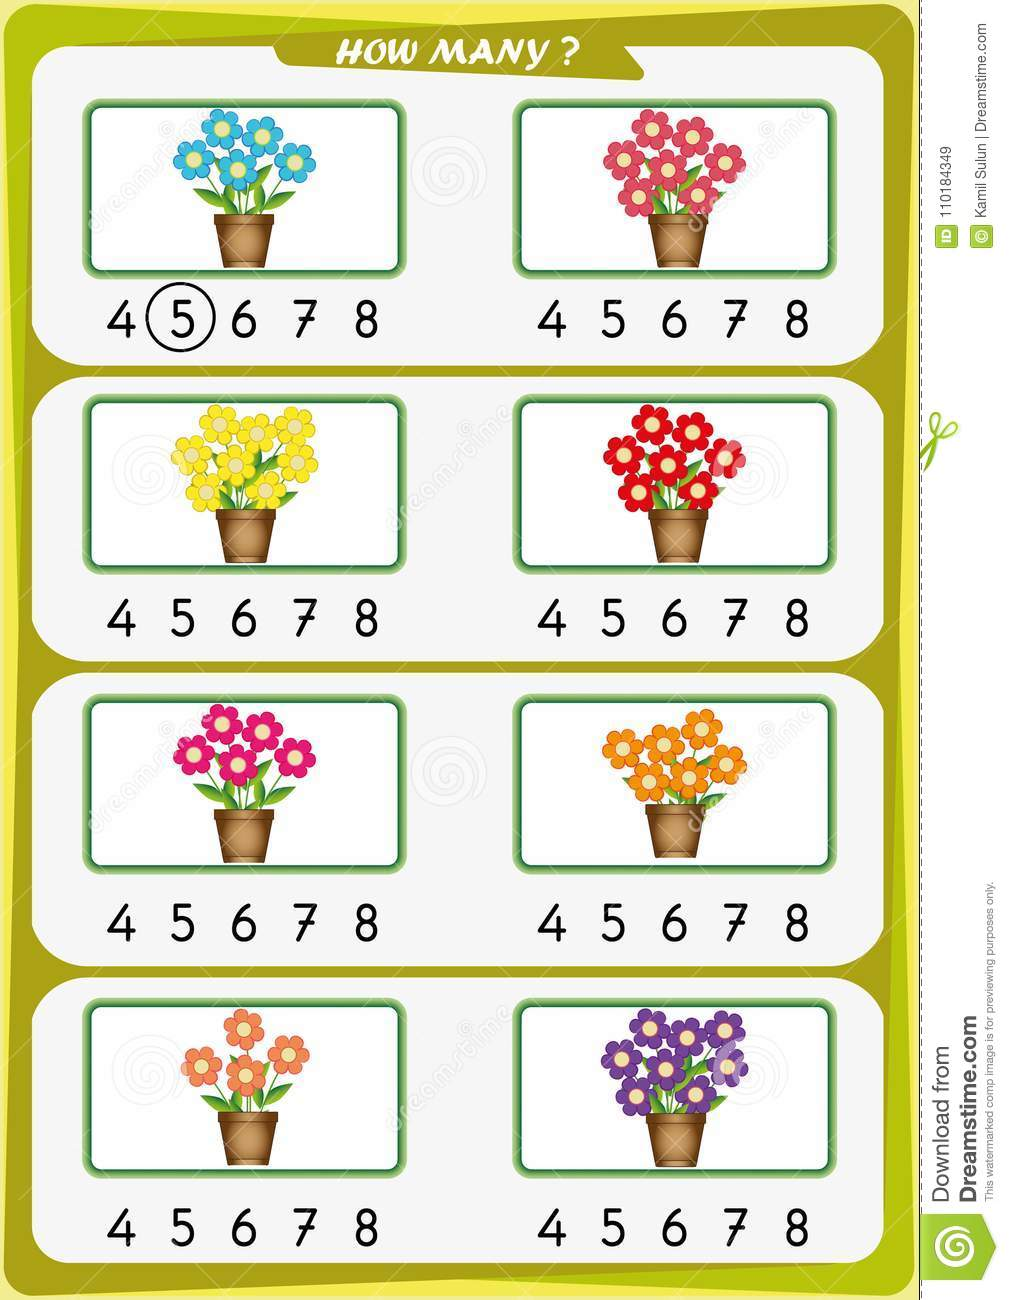 Worksheet For Kindergarten Kids, Count The Number Of Objects ...